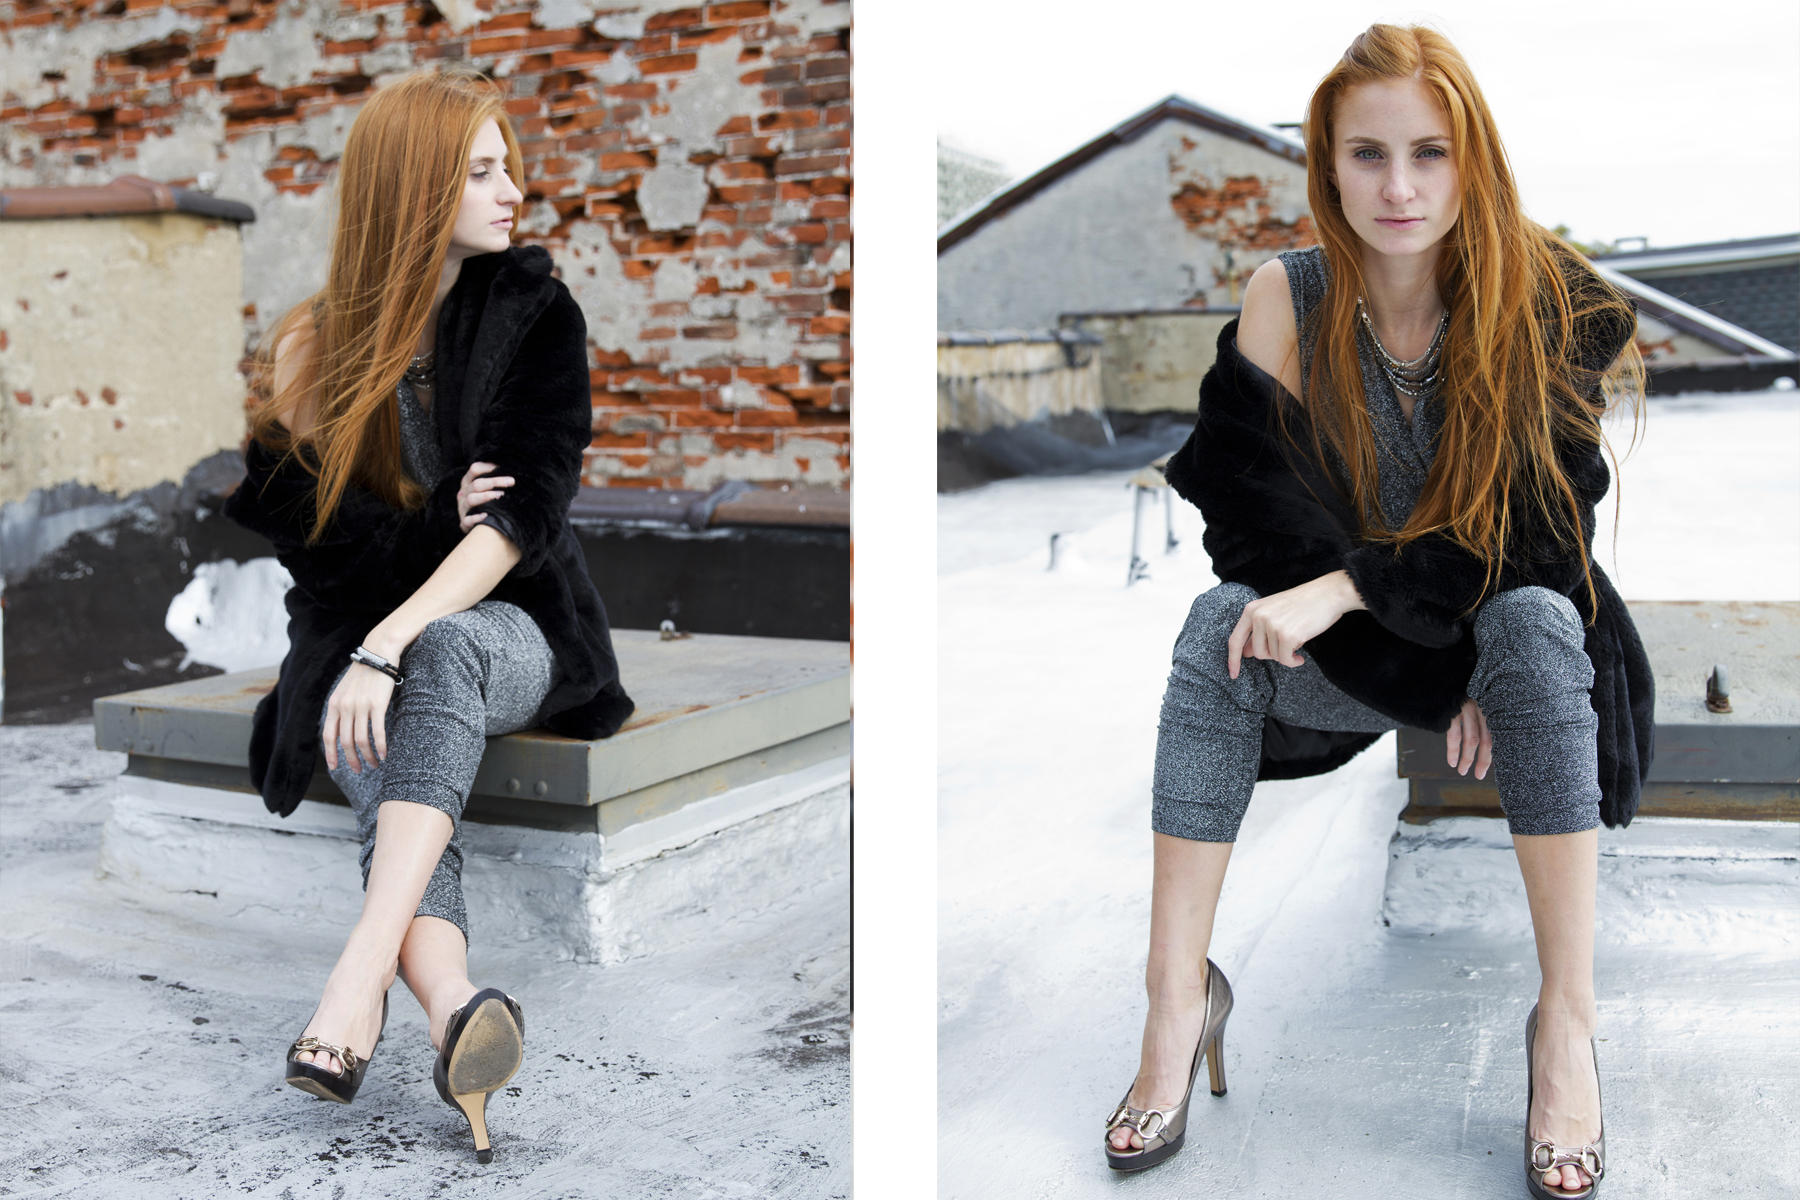 Redhead in jumper and black coat sitting on roof